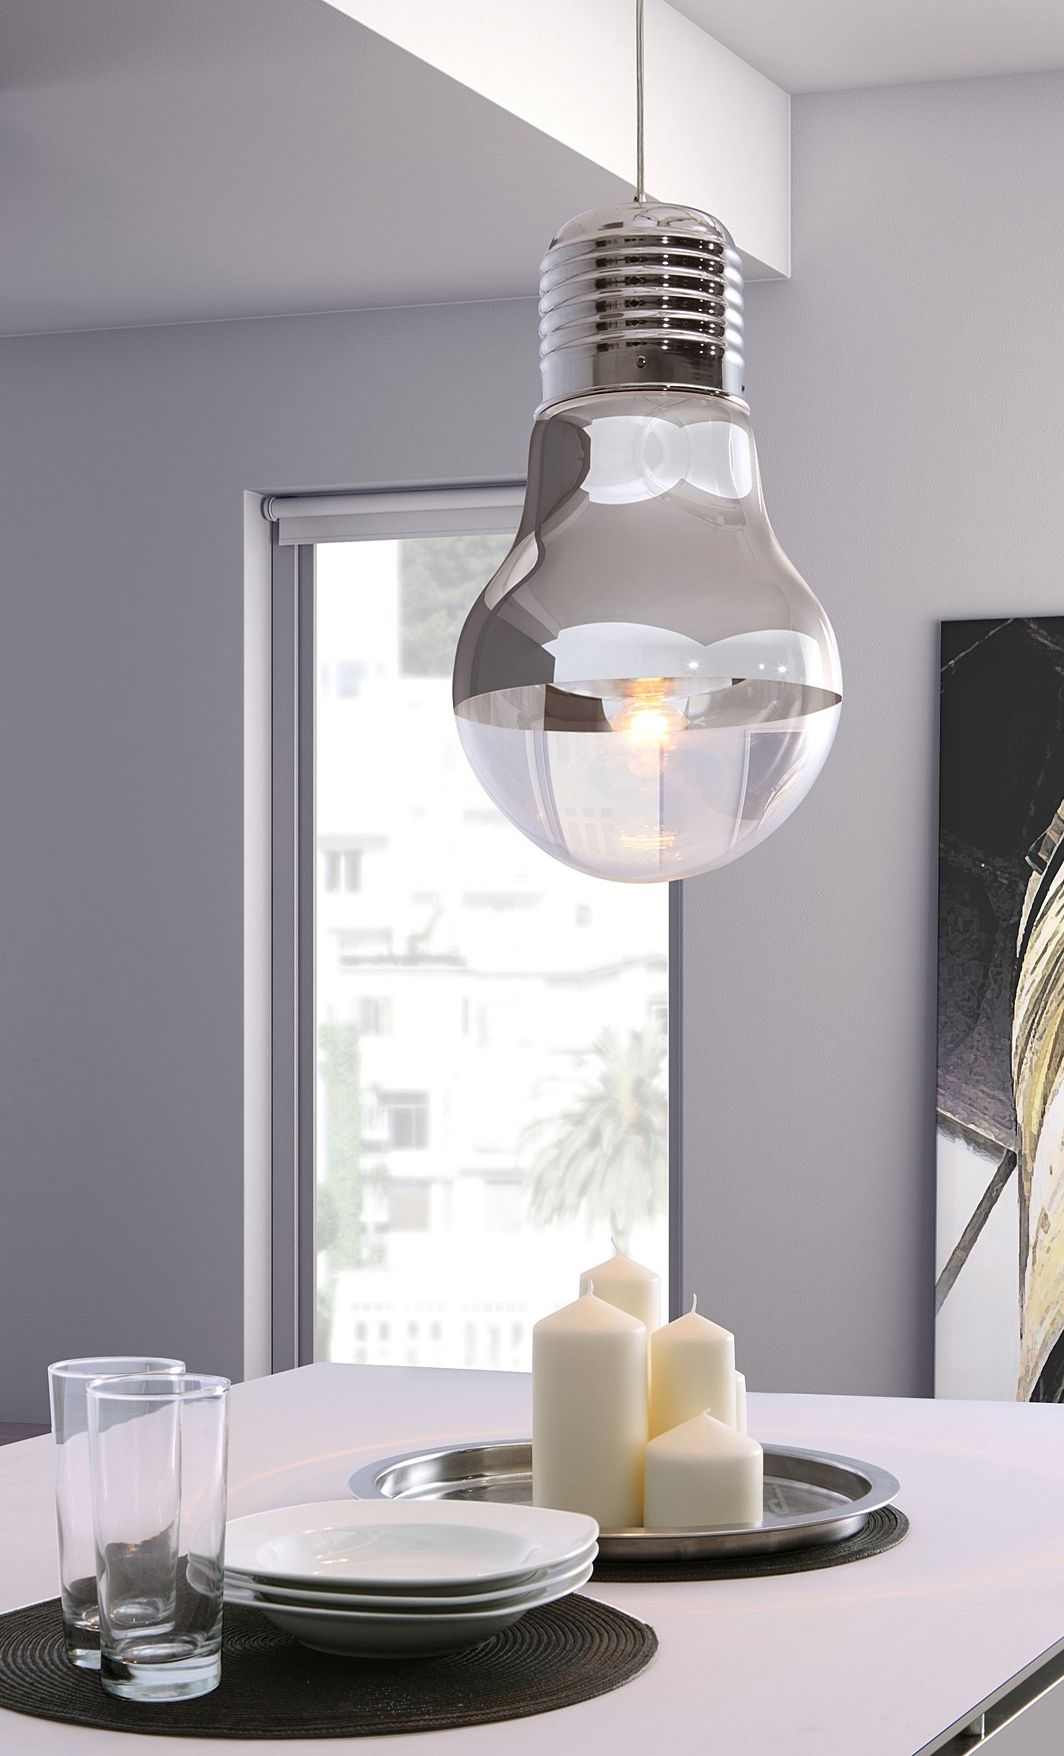 Ceiling Lamp That Looks Like A Giant Light Bulb Product